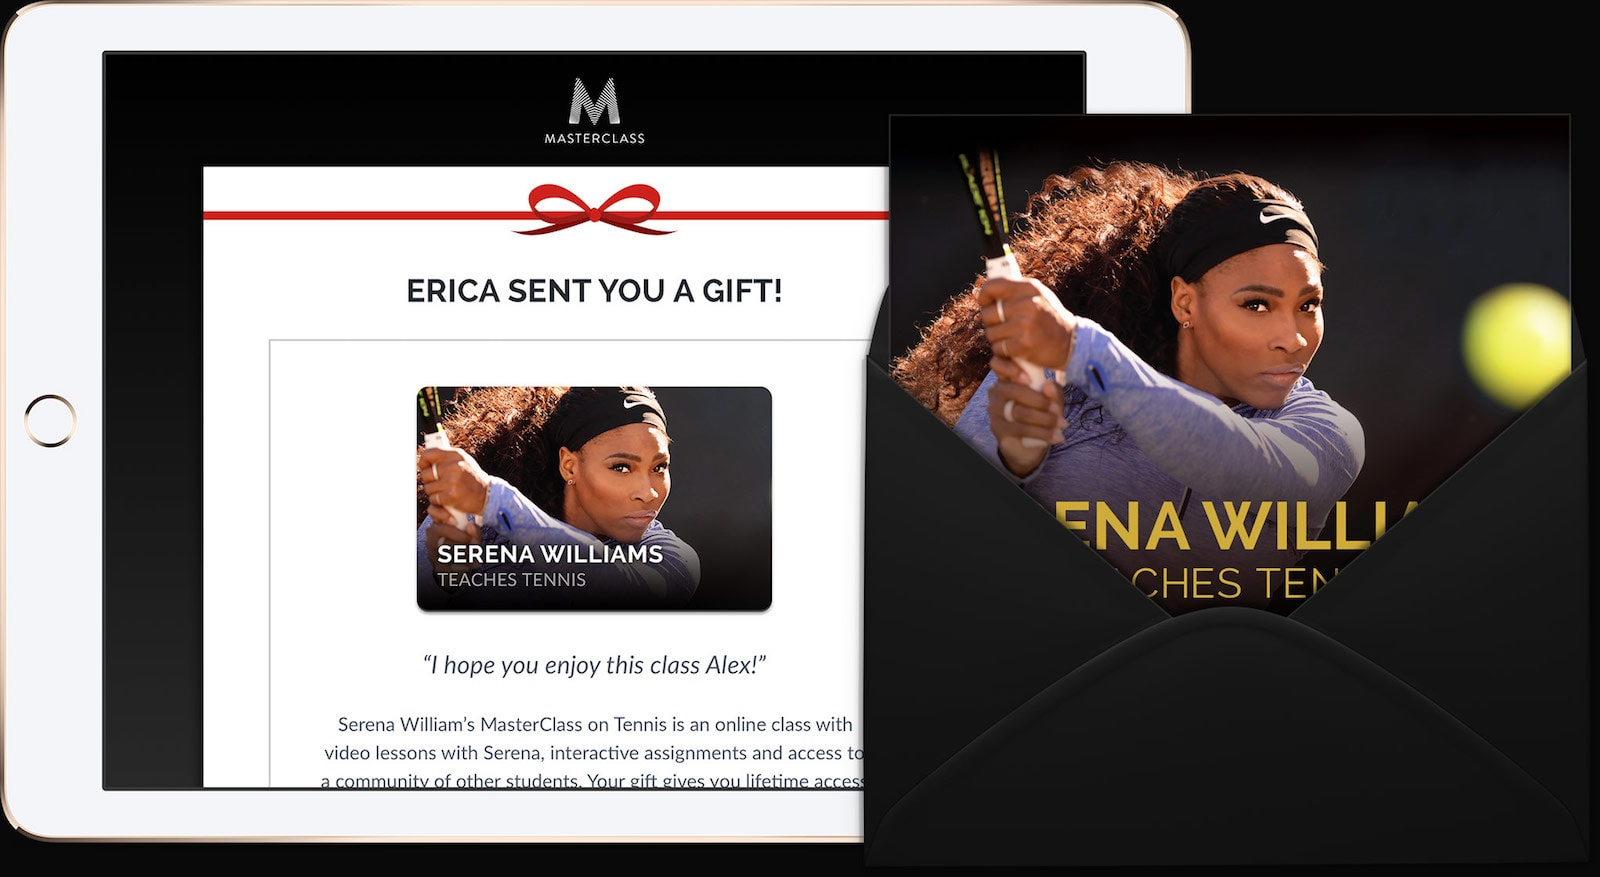 Example of a physical gift card and digital eGift card for Serena William's MasterClass on tennis